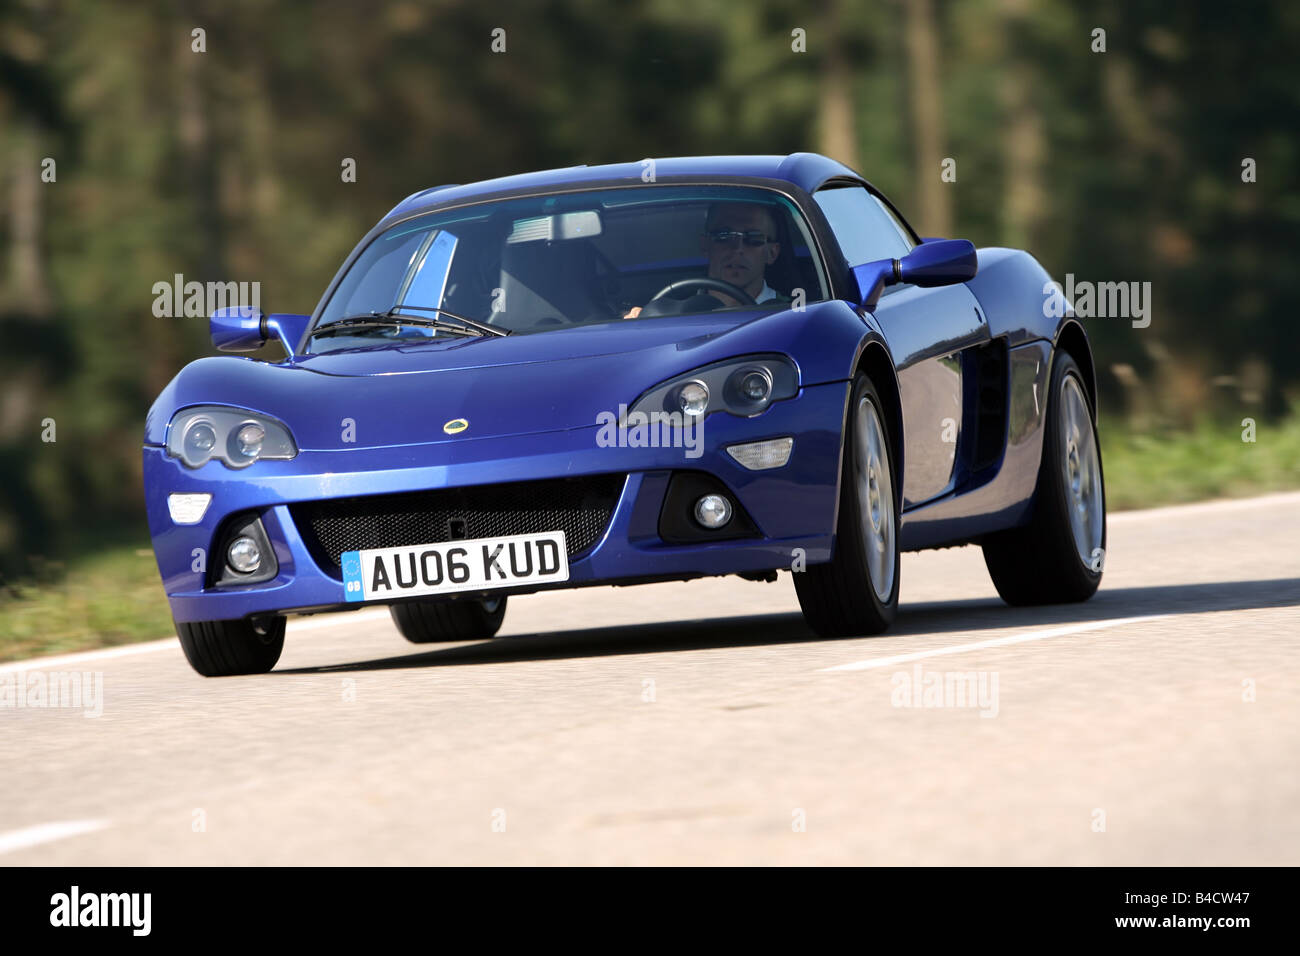 http://c8.alamy.com/comp/B4CW47/lotus-europa-s-model-year-2006-blue-moving-diagonal-from-the-front-B4CW47.jpg